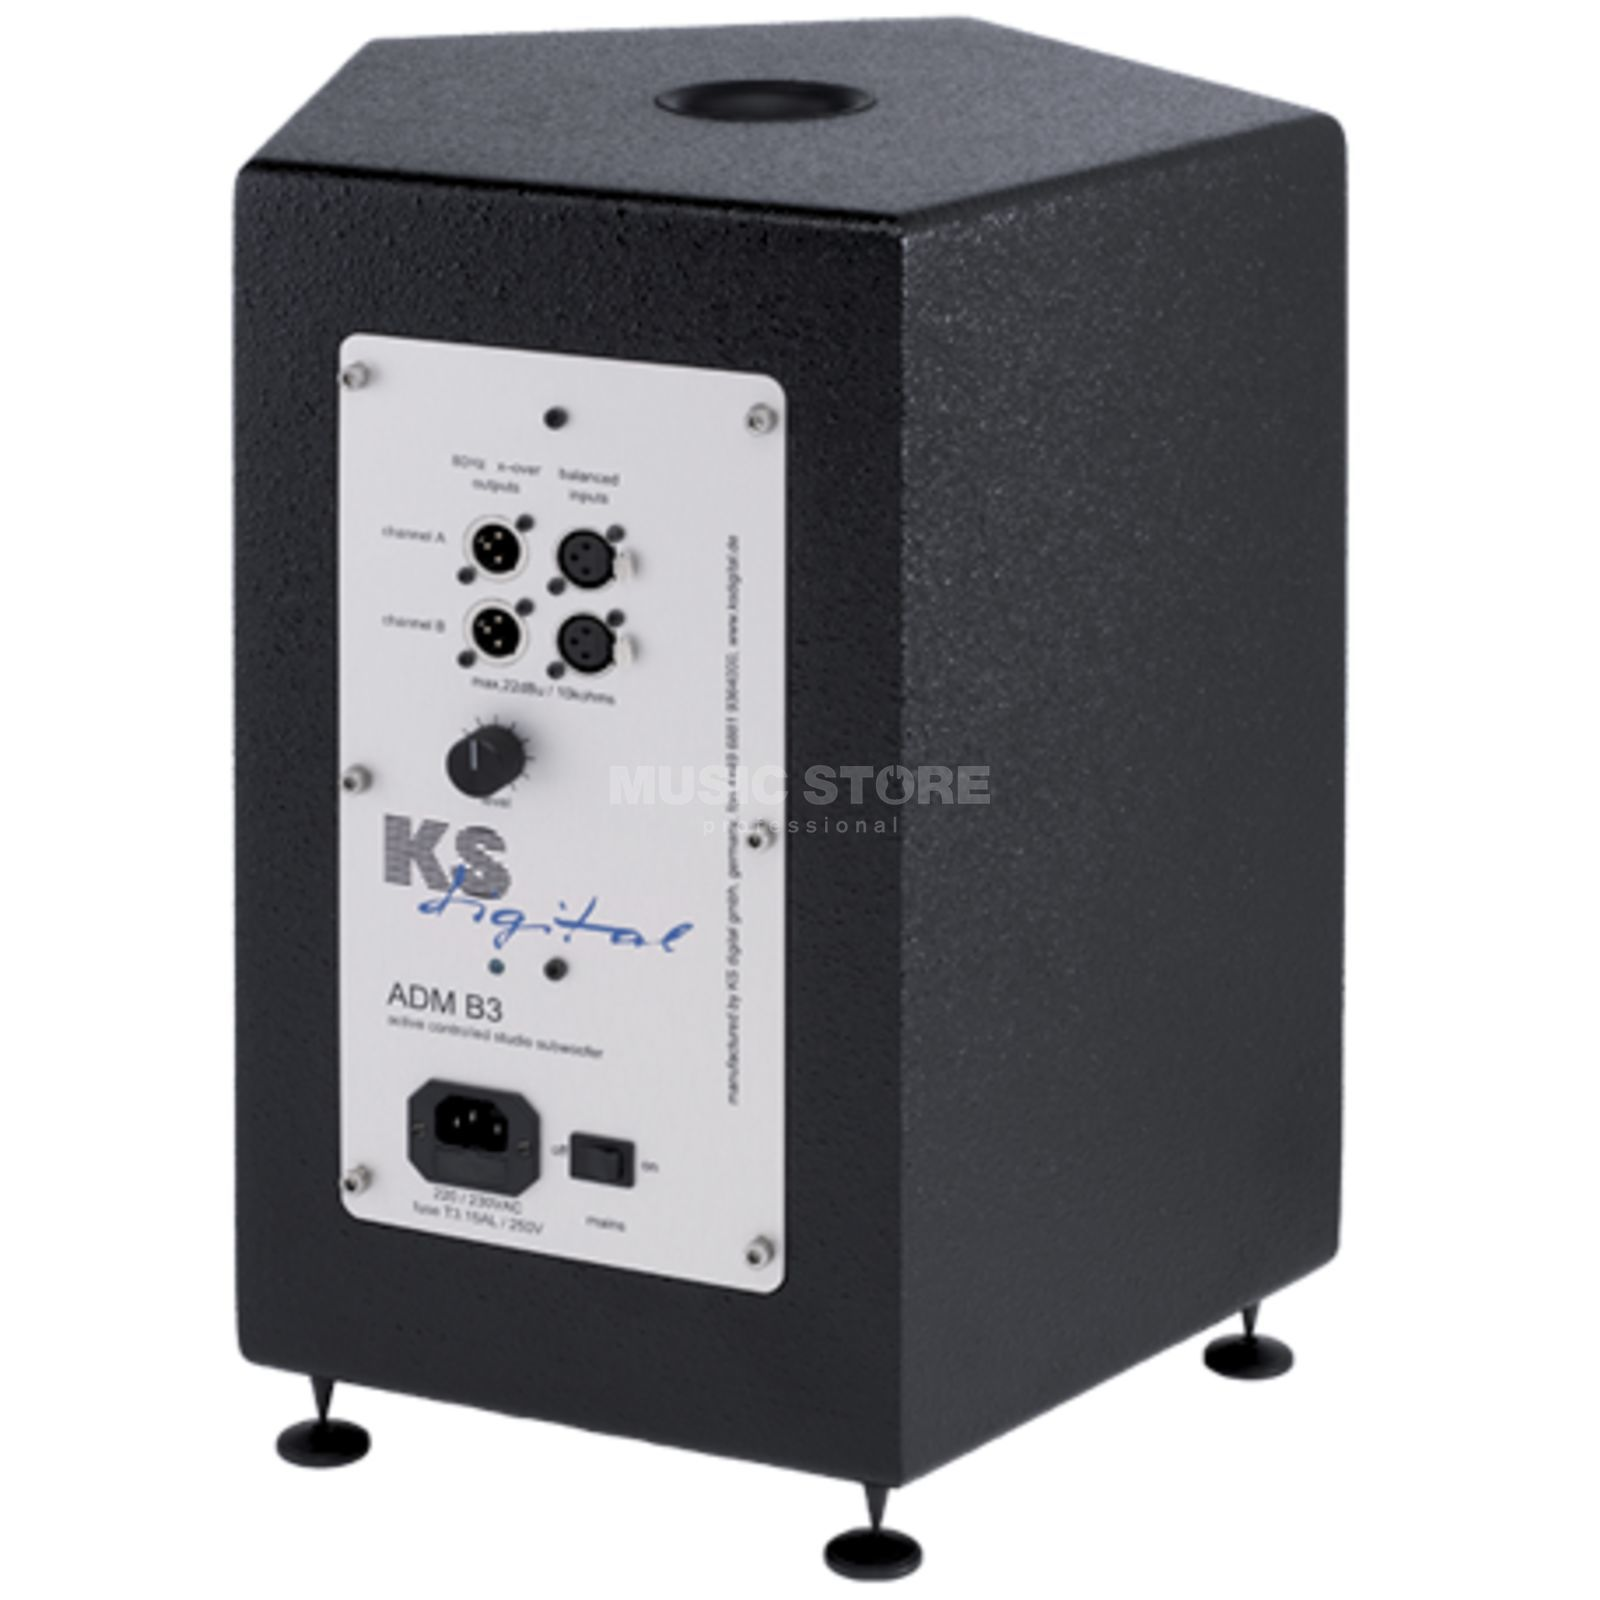 KS-Digital ADM-B3 Subwoofer Product Image